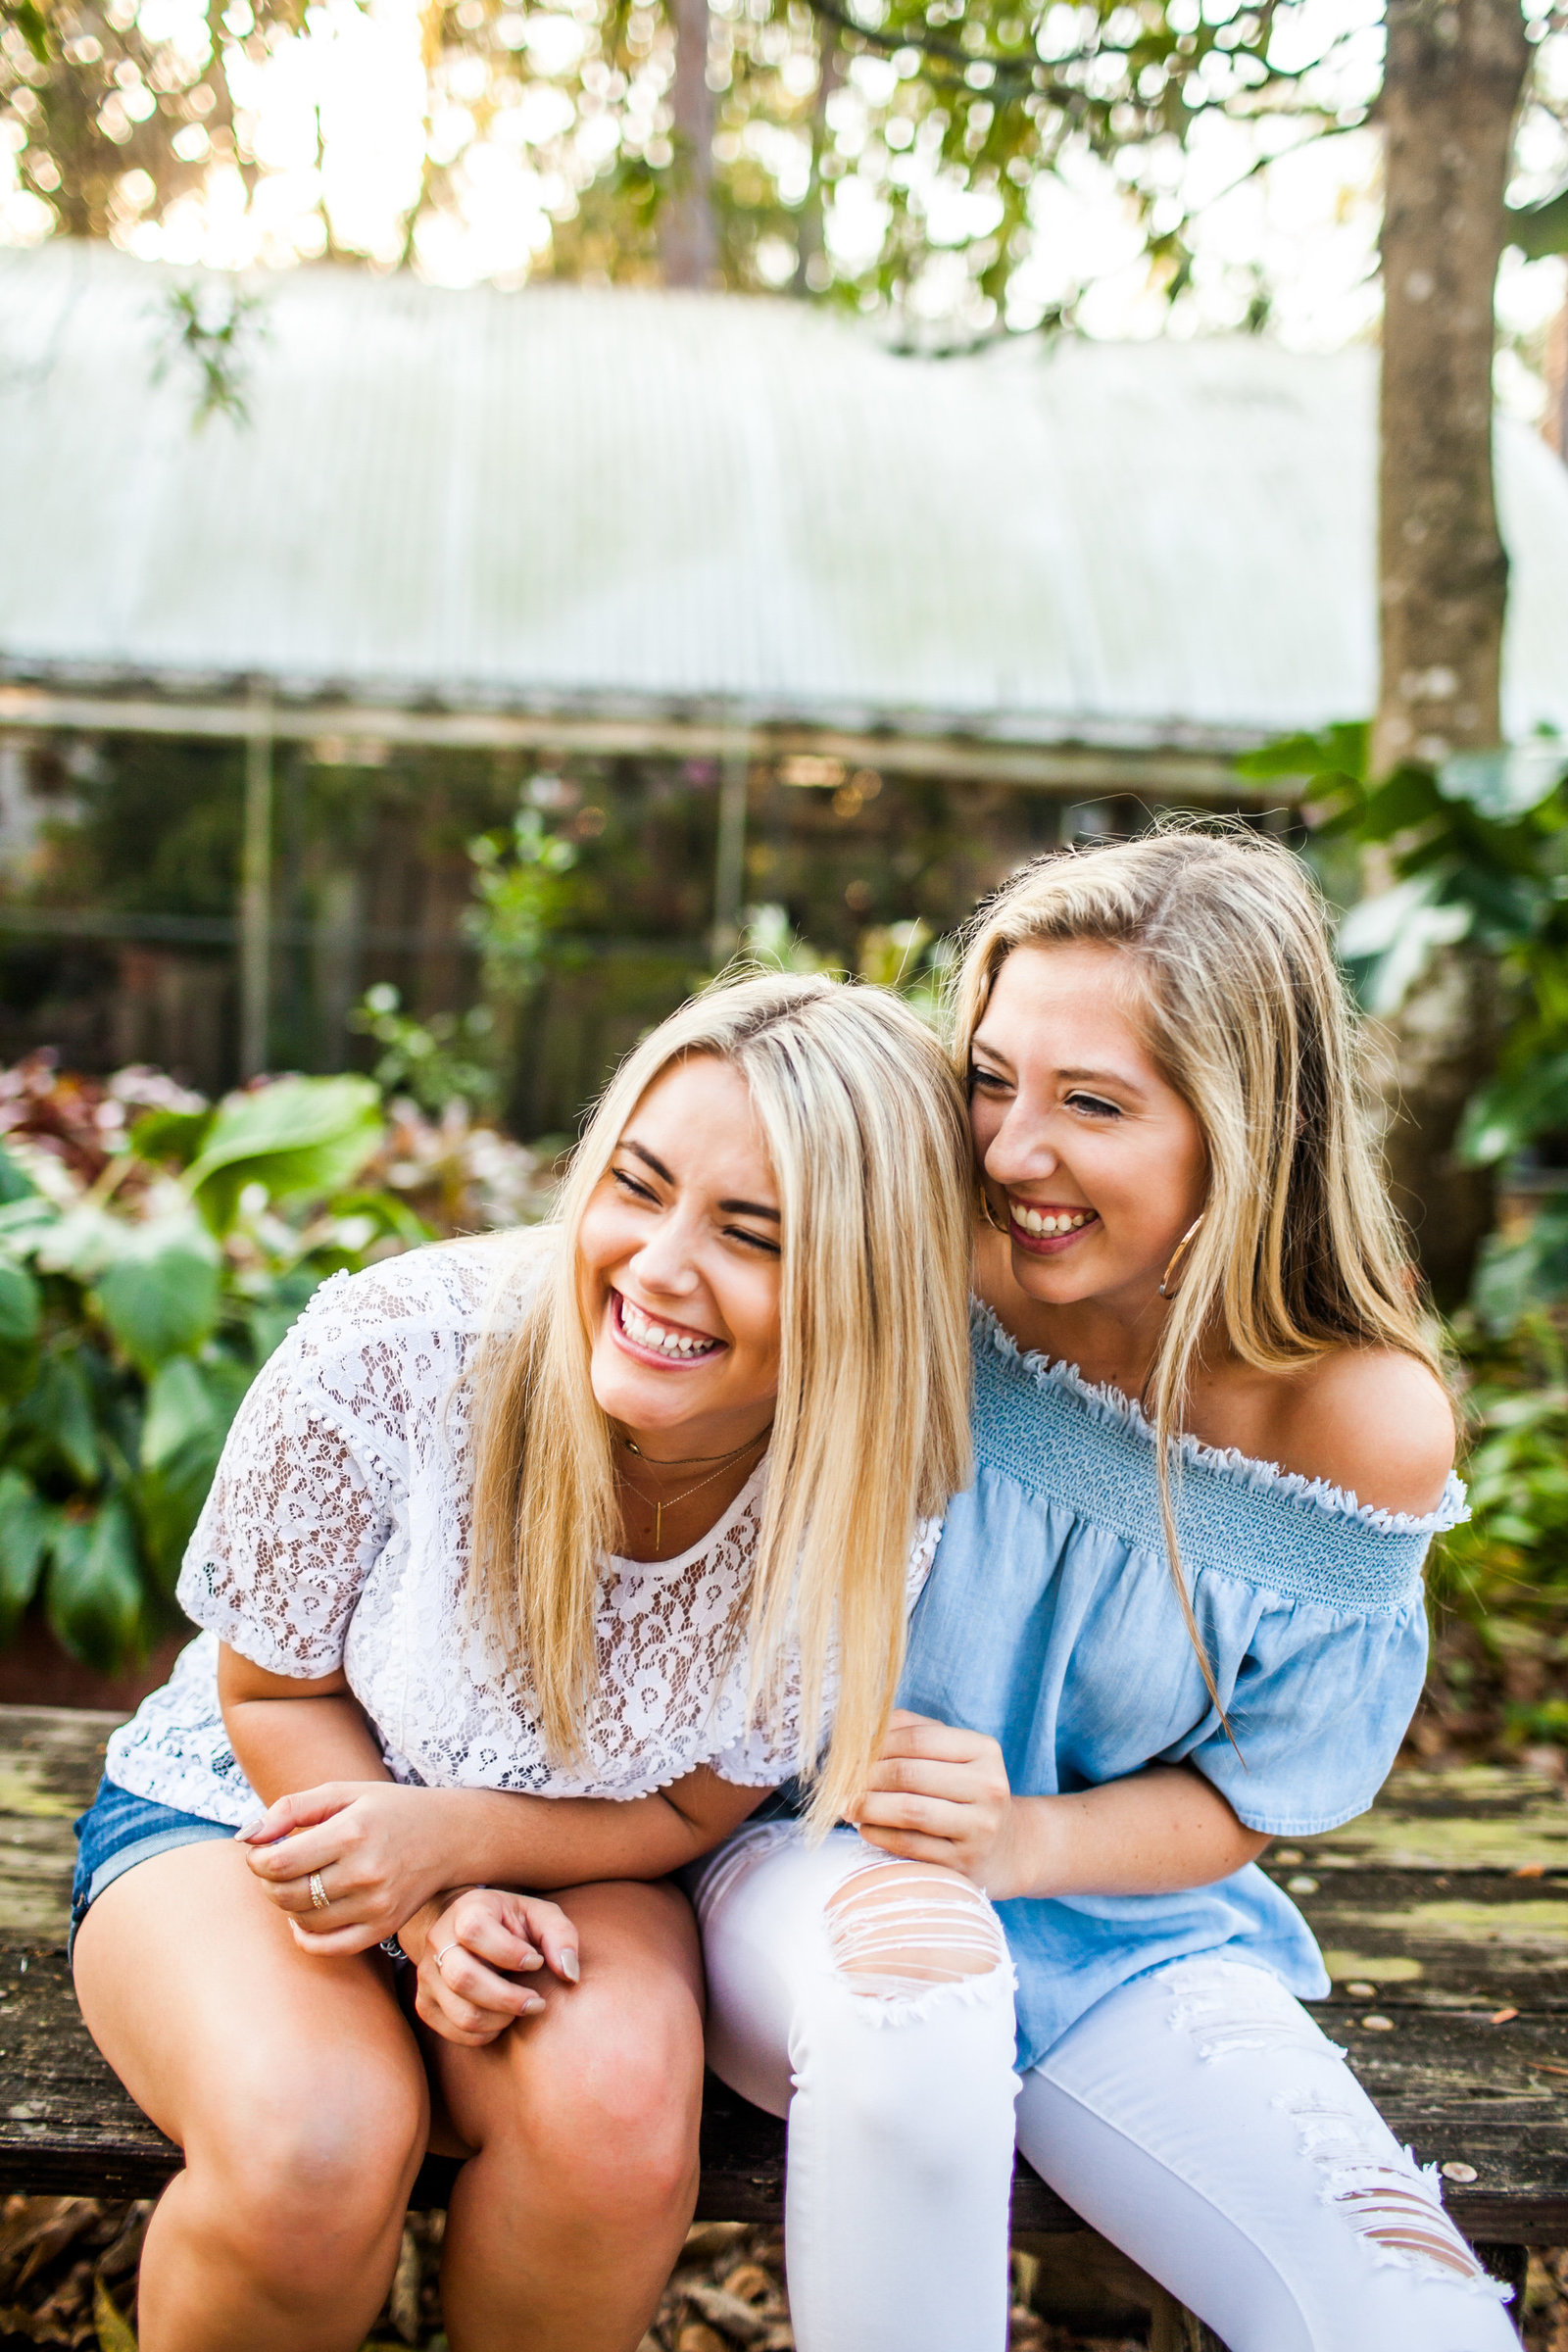 Friends laughing on a bench in a lush Florida garden